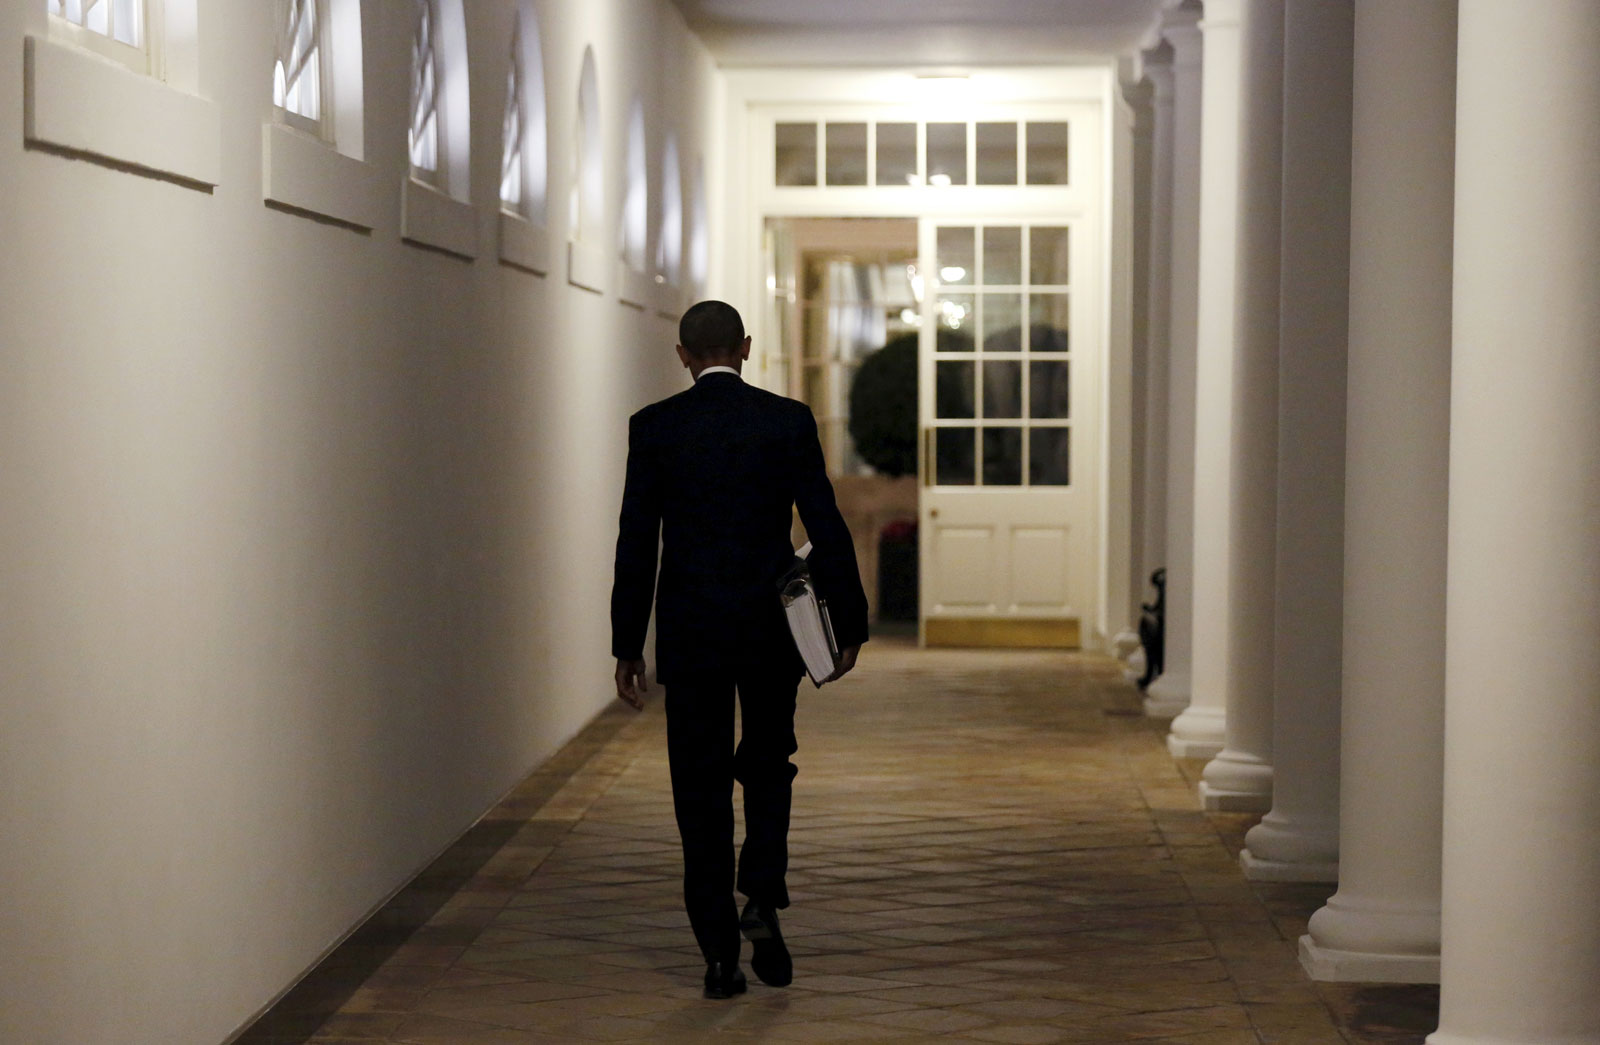 President Barack Obama carries a binder containing material on potential Supreme Court nominees, Washington, D.C., February 19, 2016